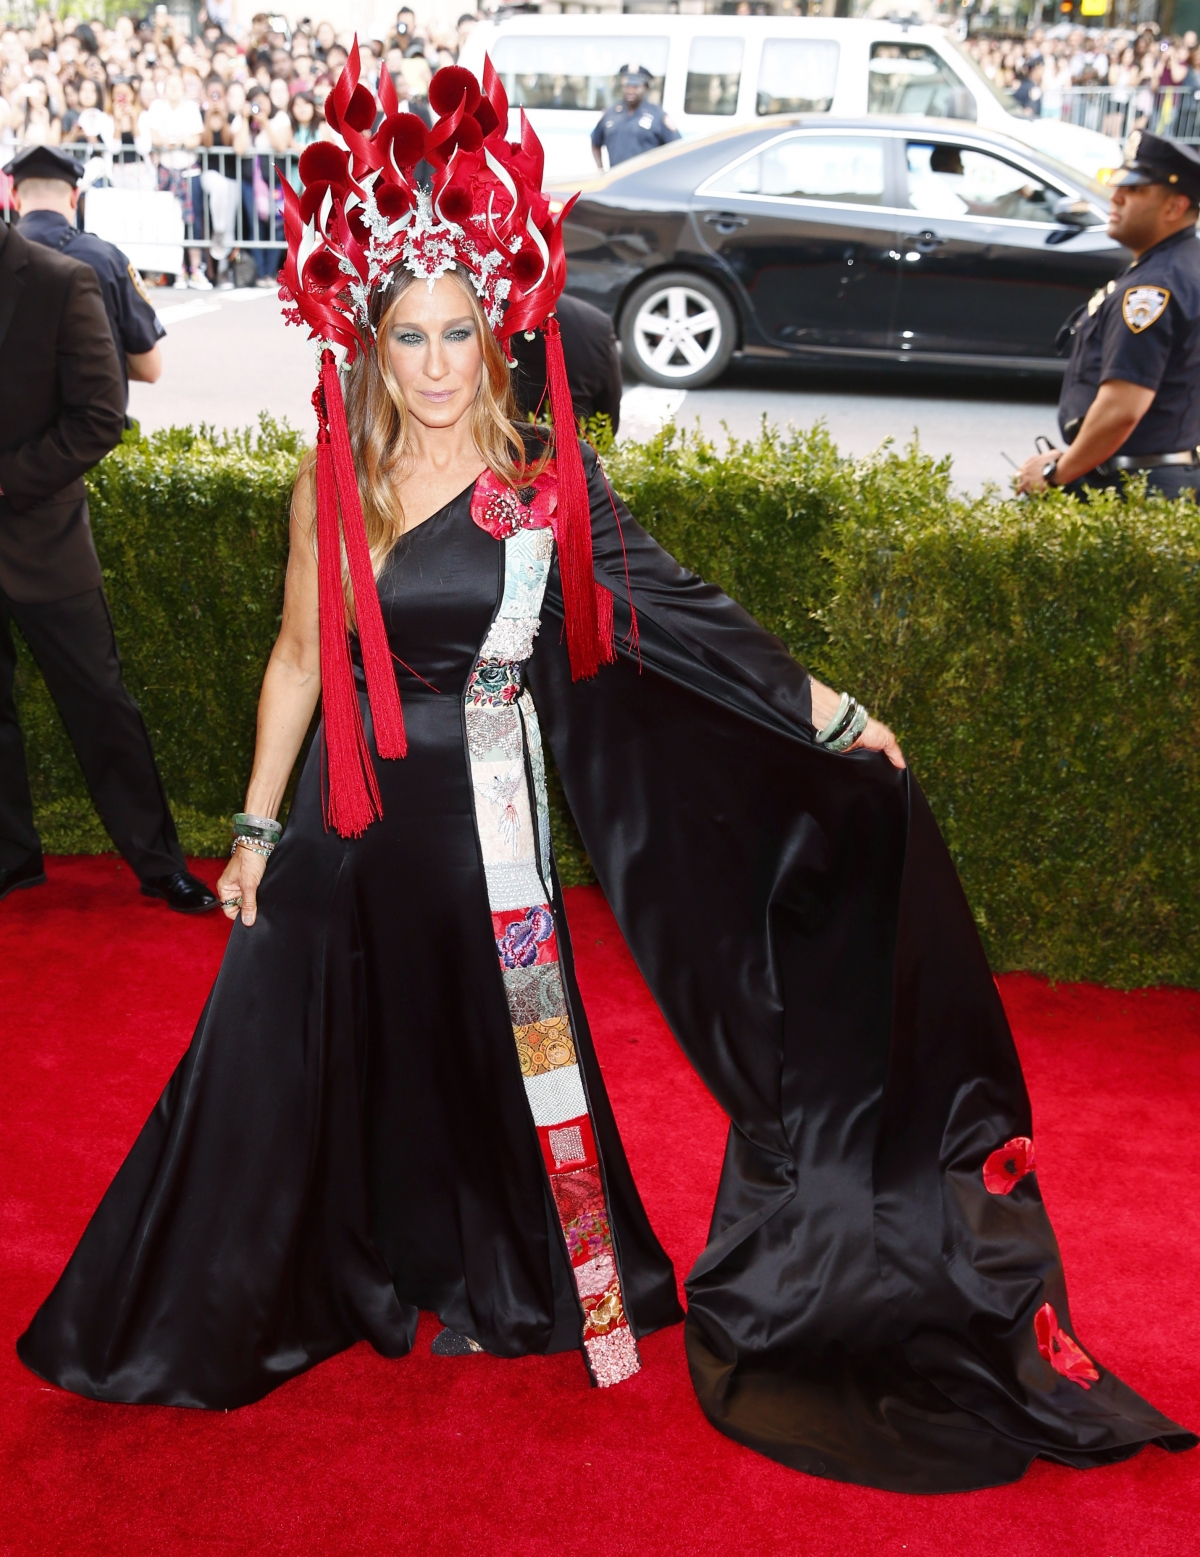 met gala 2015 met gala 2015 best of falls, photo bombs, sheer dress moments and